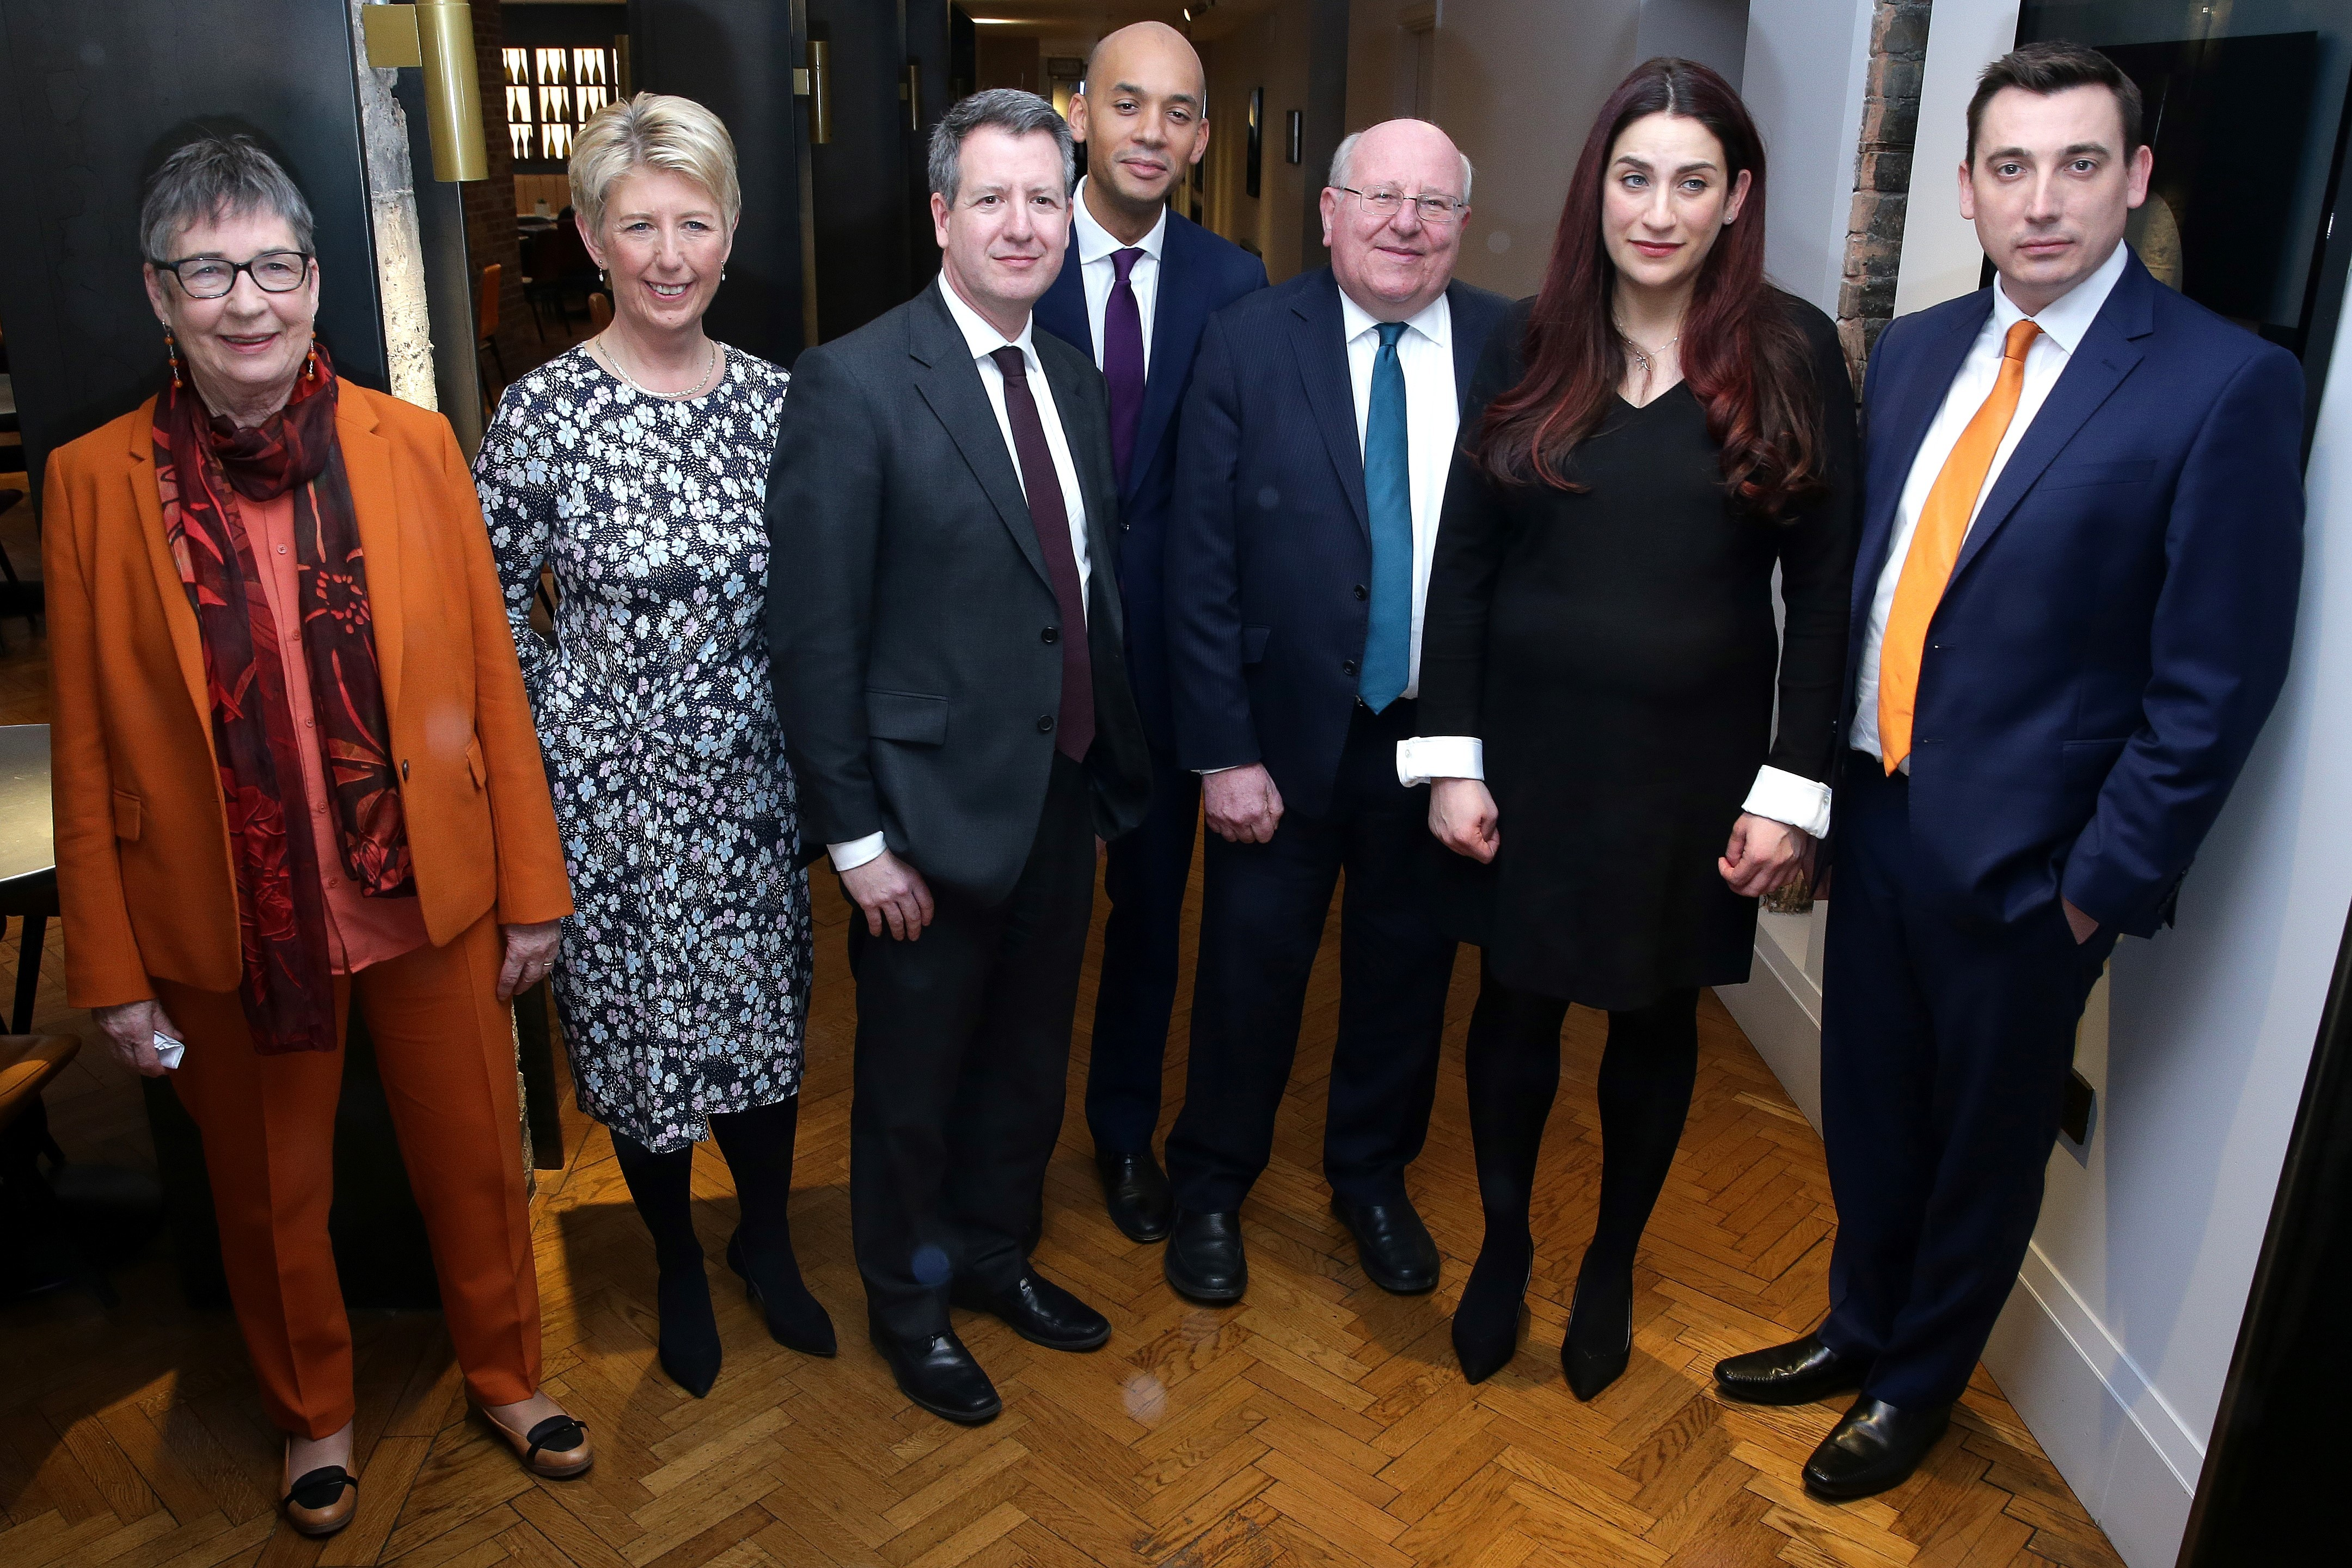 Former Labour party MPs, (From Left) Ann Coffey, Angela Smith, Chris Leslie, Chuka Umunna, Mike Gapes, Luciana Berger, and Gavin Shuker pose for a photograph following a press conference in London on February 18, 2019, where they announced their resignation from the Labour Party, and the formation of a new independent group of MPs.  (Photo: DANIEL LEAL-OLIVAS/AFP/Getty Images)